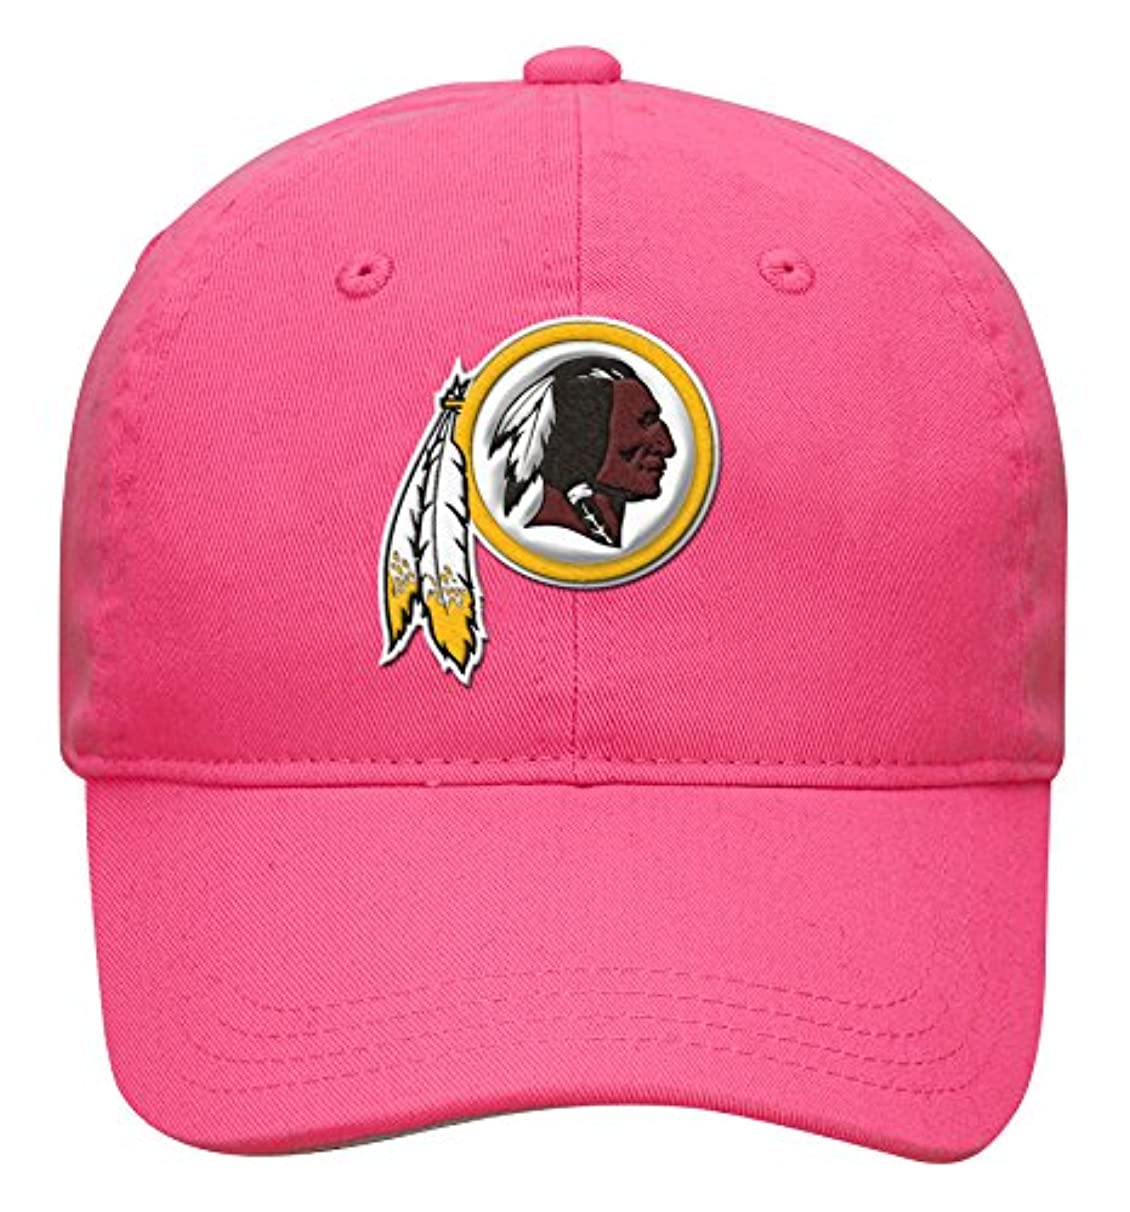 Outerstuff NFL Teen-Girls NFL Kids & Youth Girls Slouch Adjustable Hat